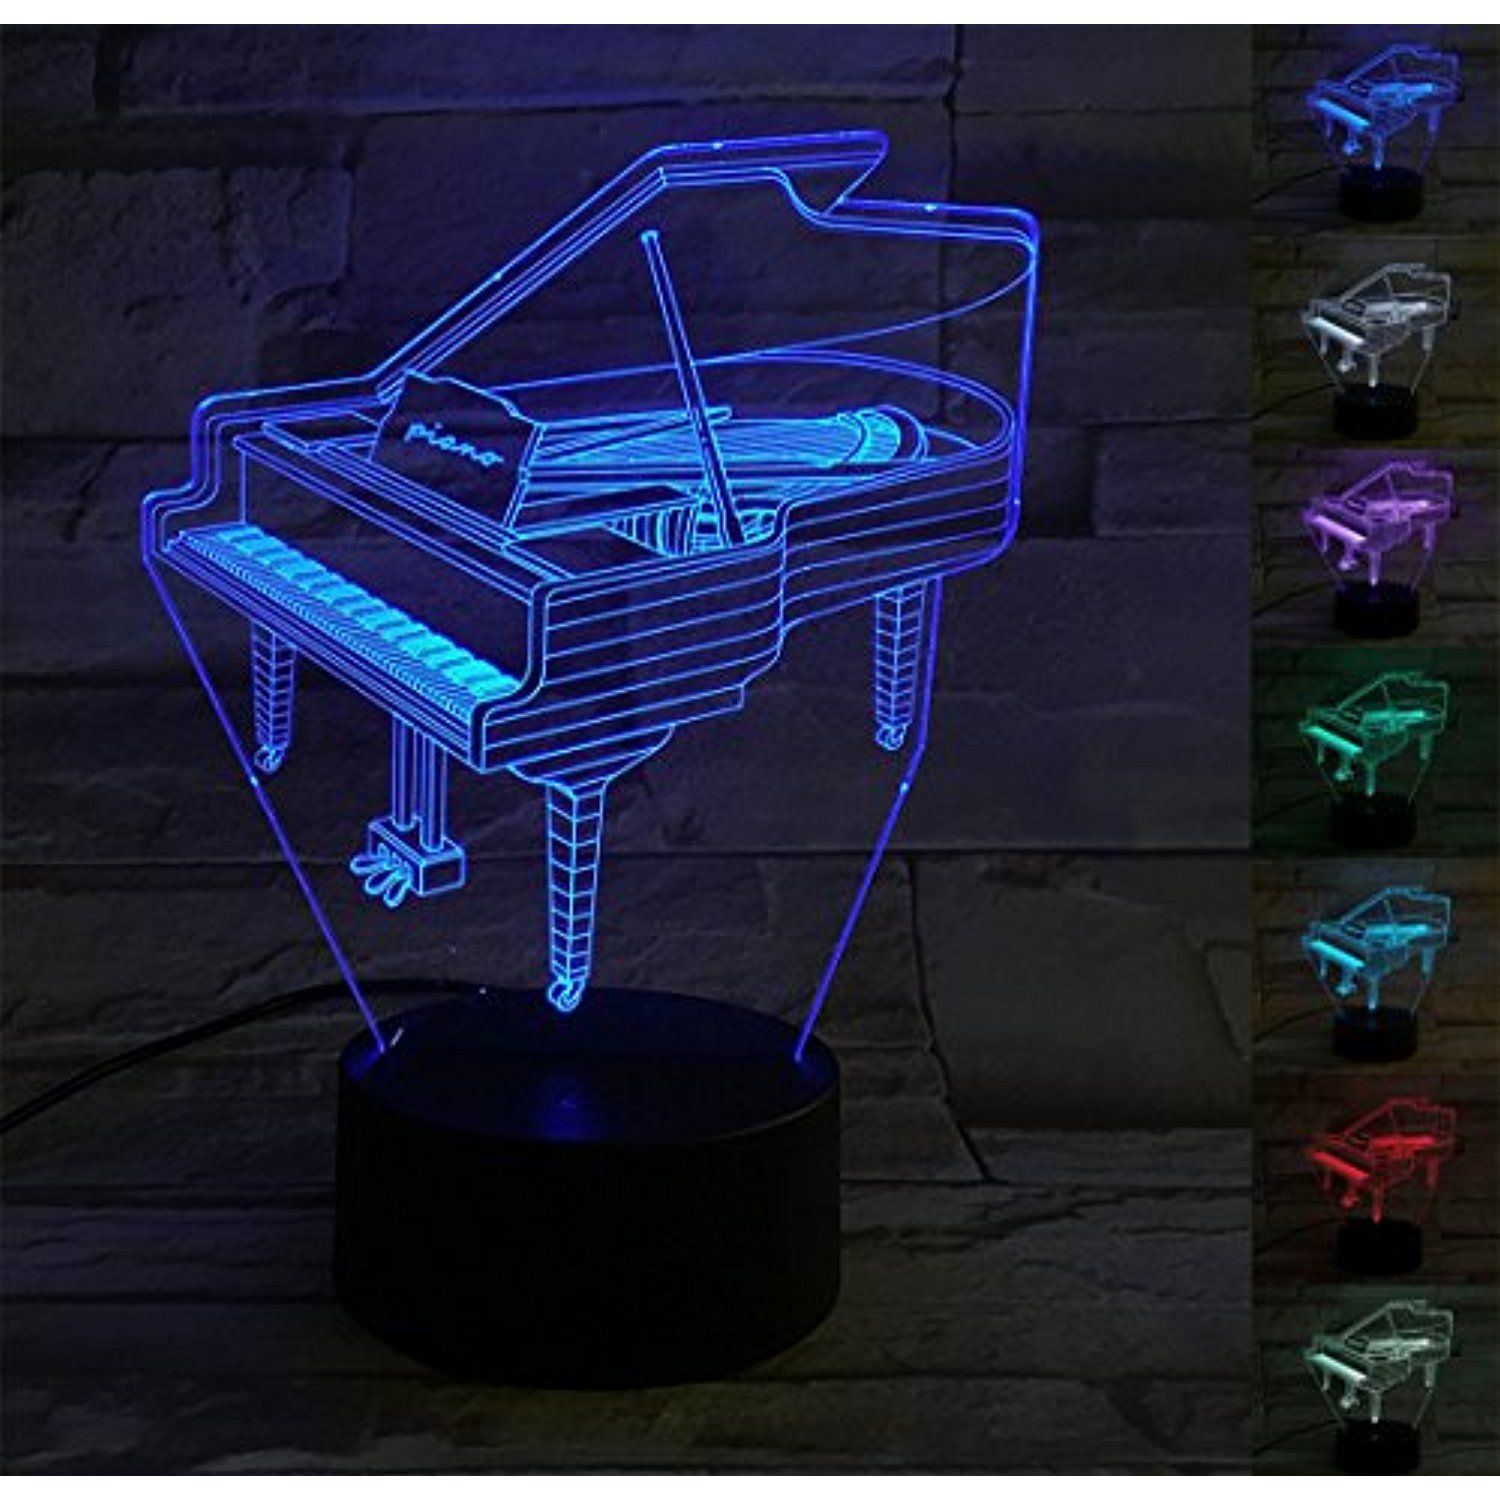 Ybest 3d Illusion Lamp Piano 7 Colors Changing Led Night Light For Home Decor Usb Powered Touch Button Des Cool Gifts For Kids 3d Illusion Lamp Led Night Light